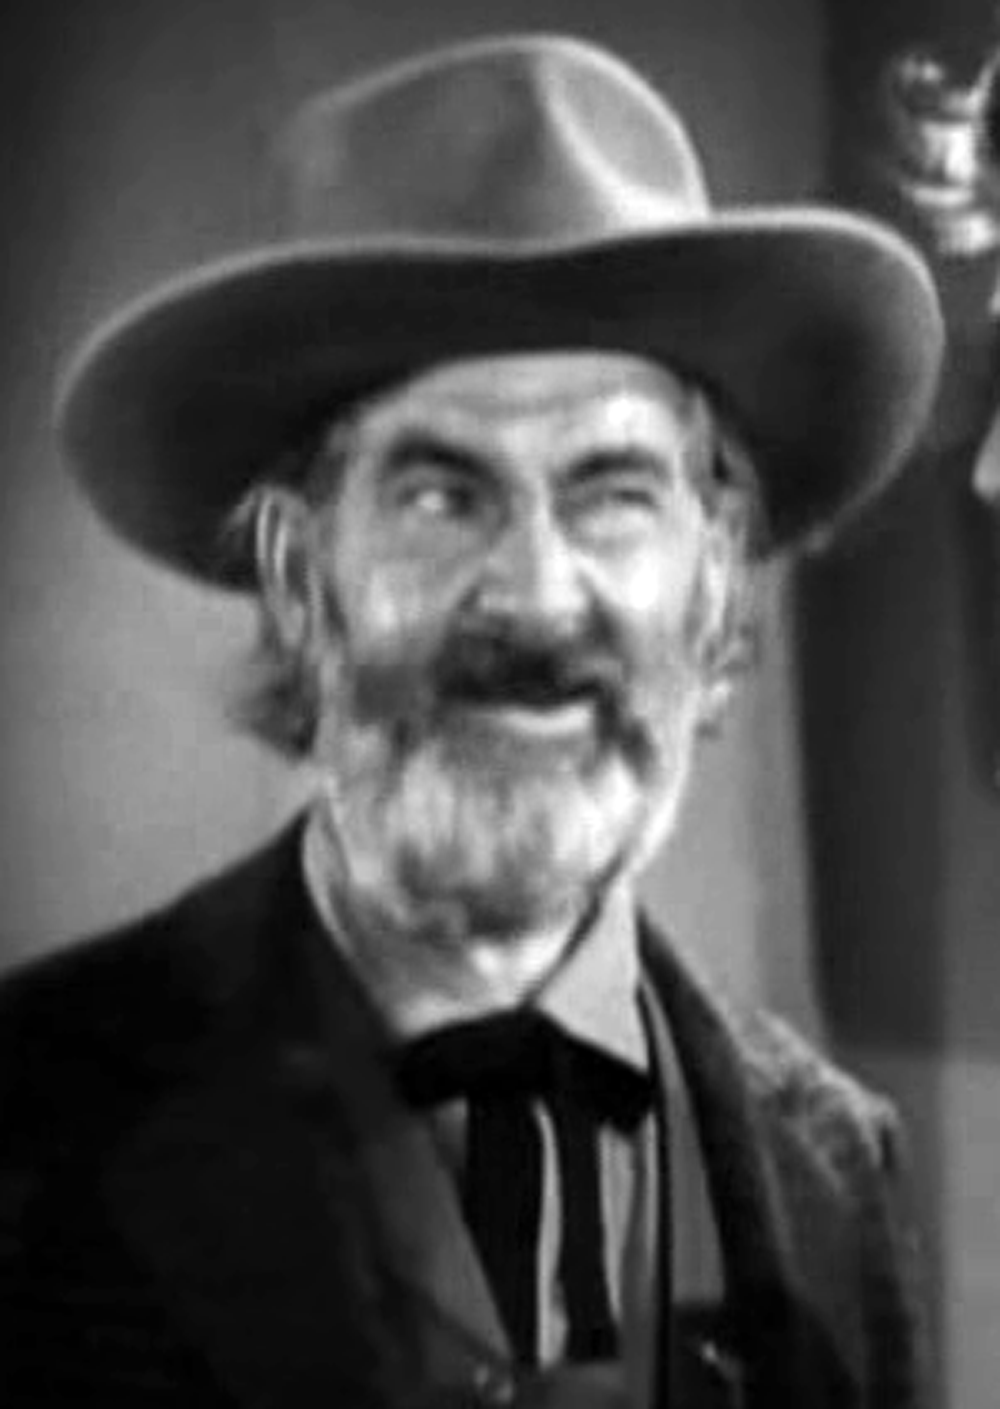 george gabby hayes wikipedia